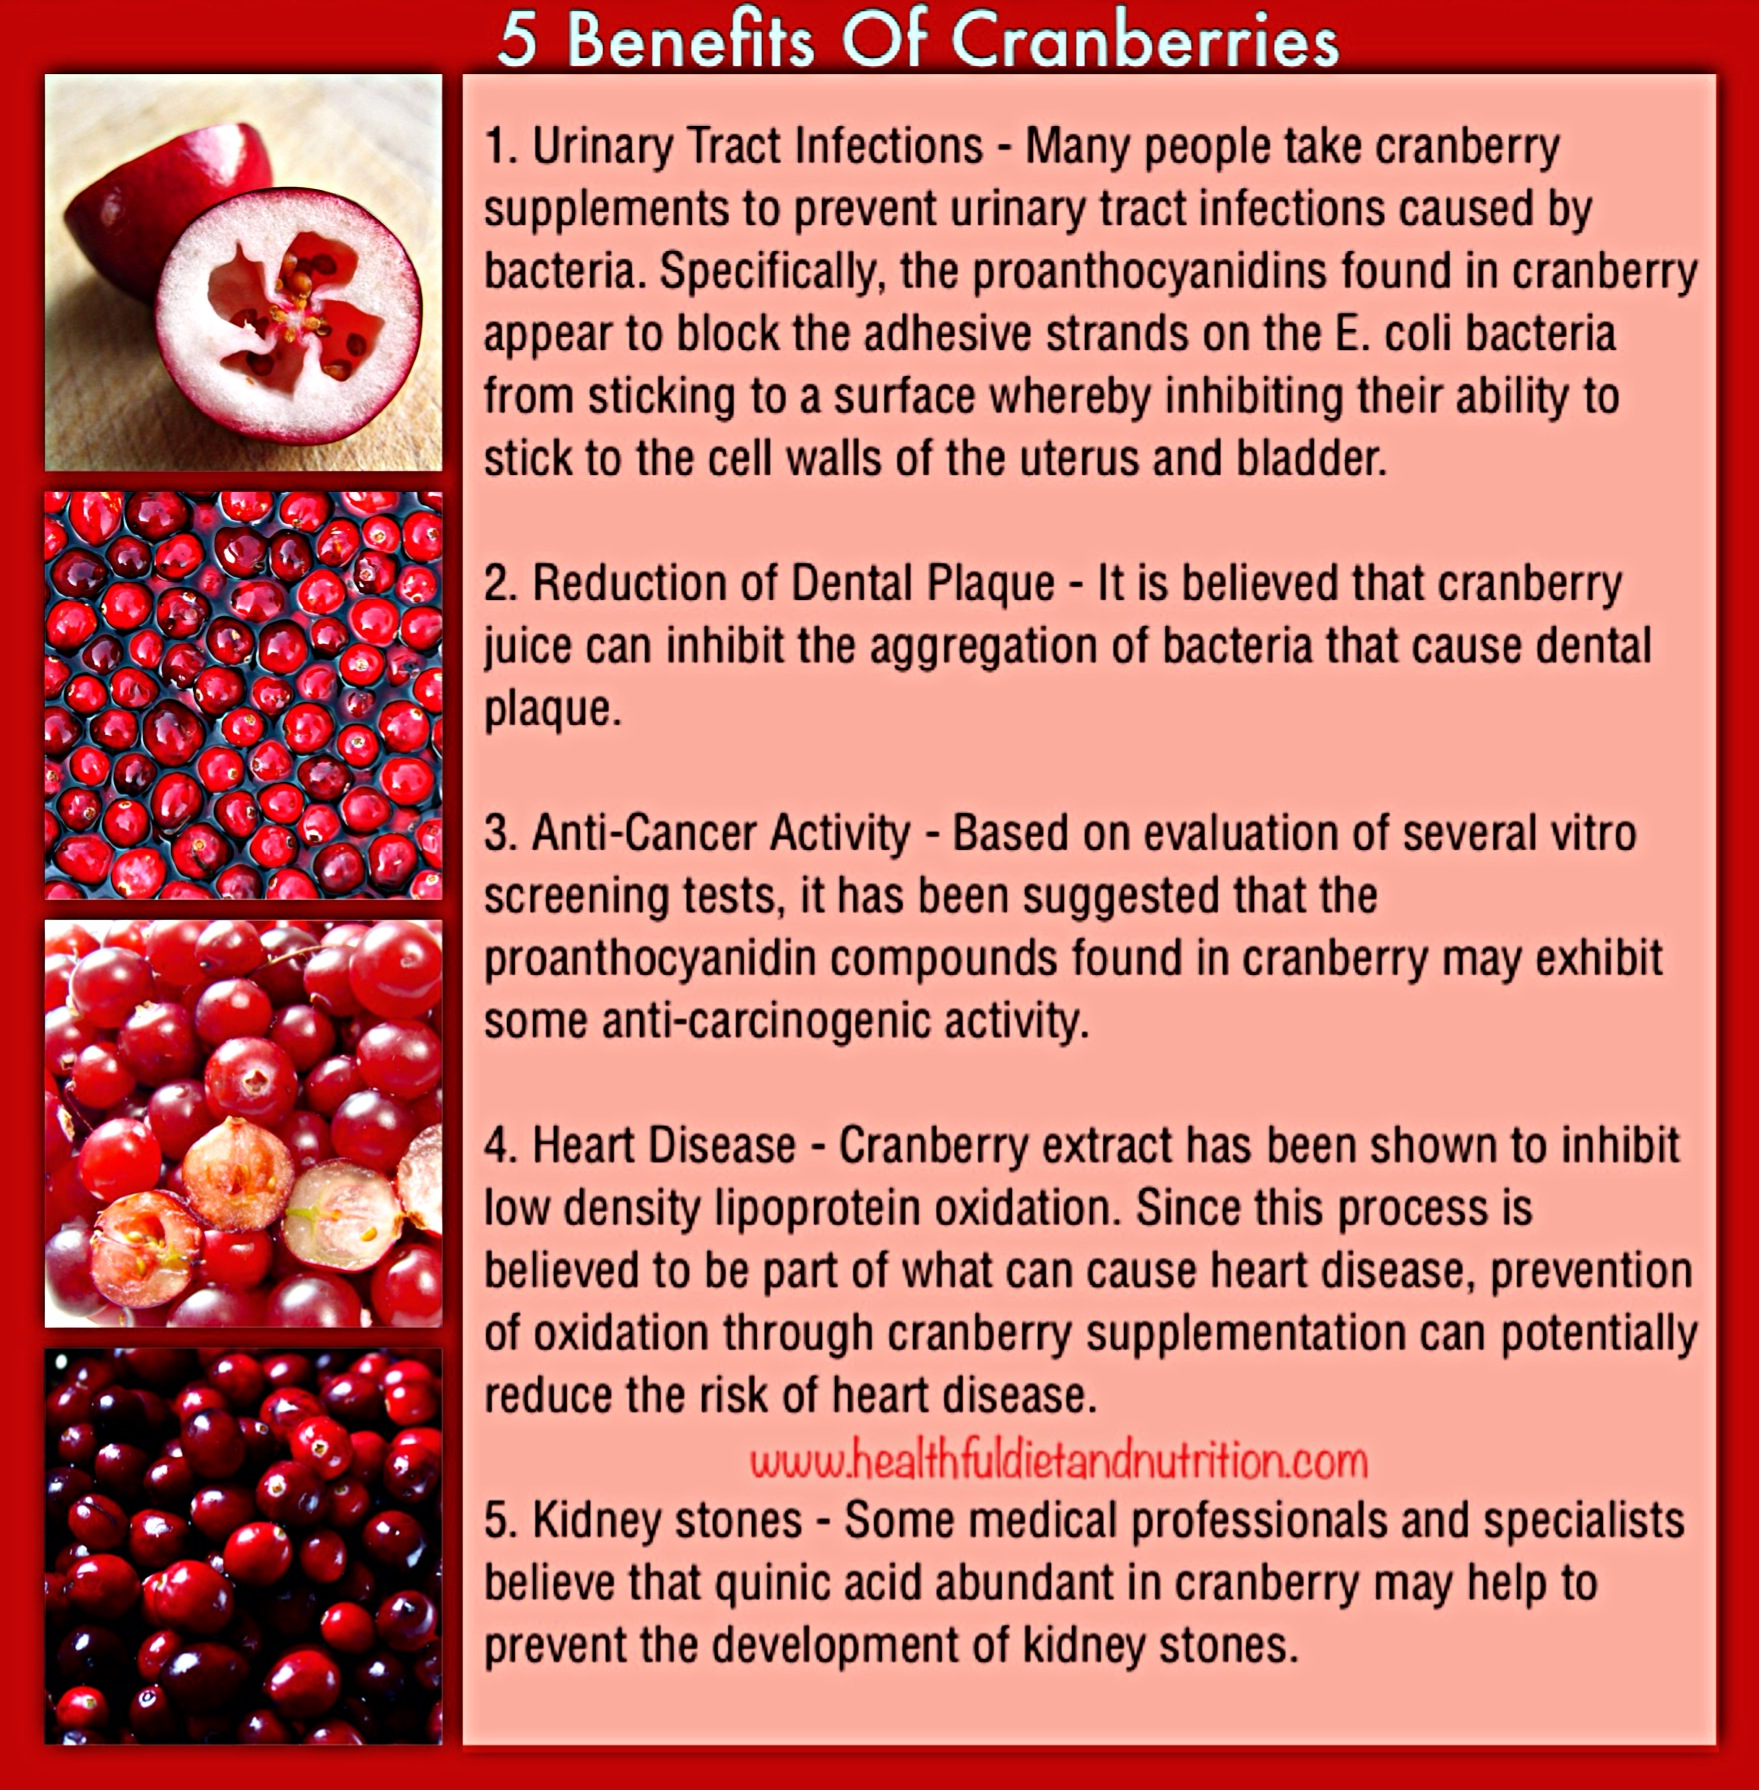 5 Benefits of Cranberries